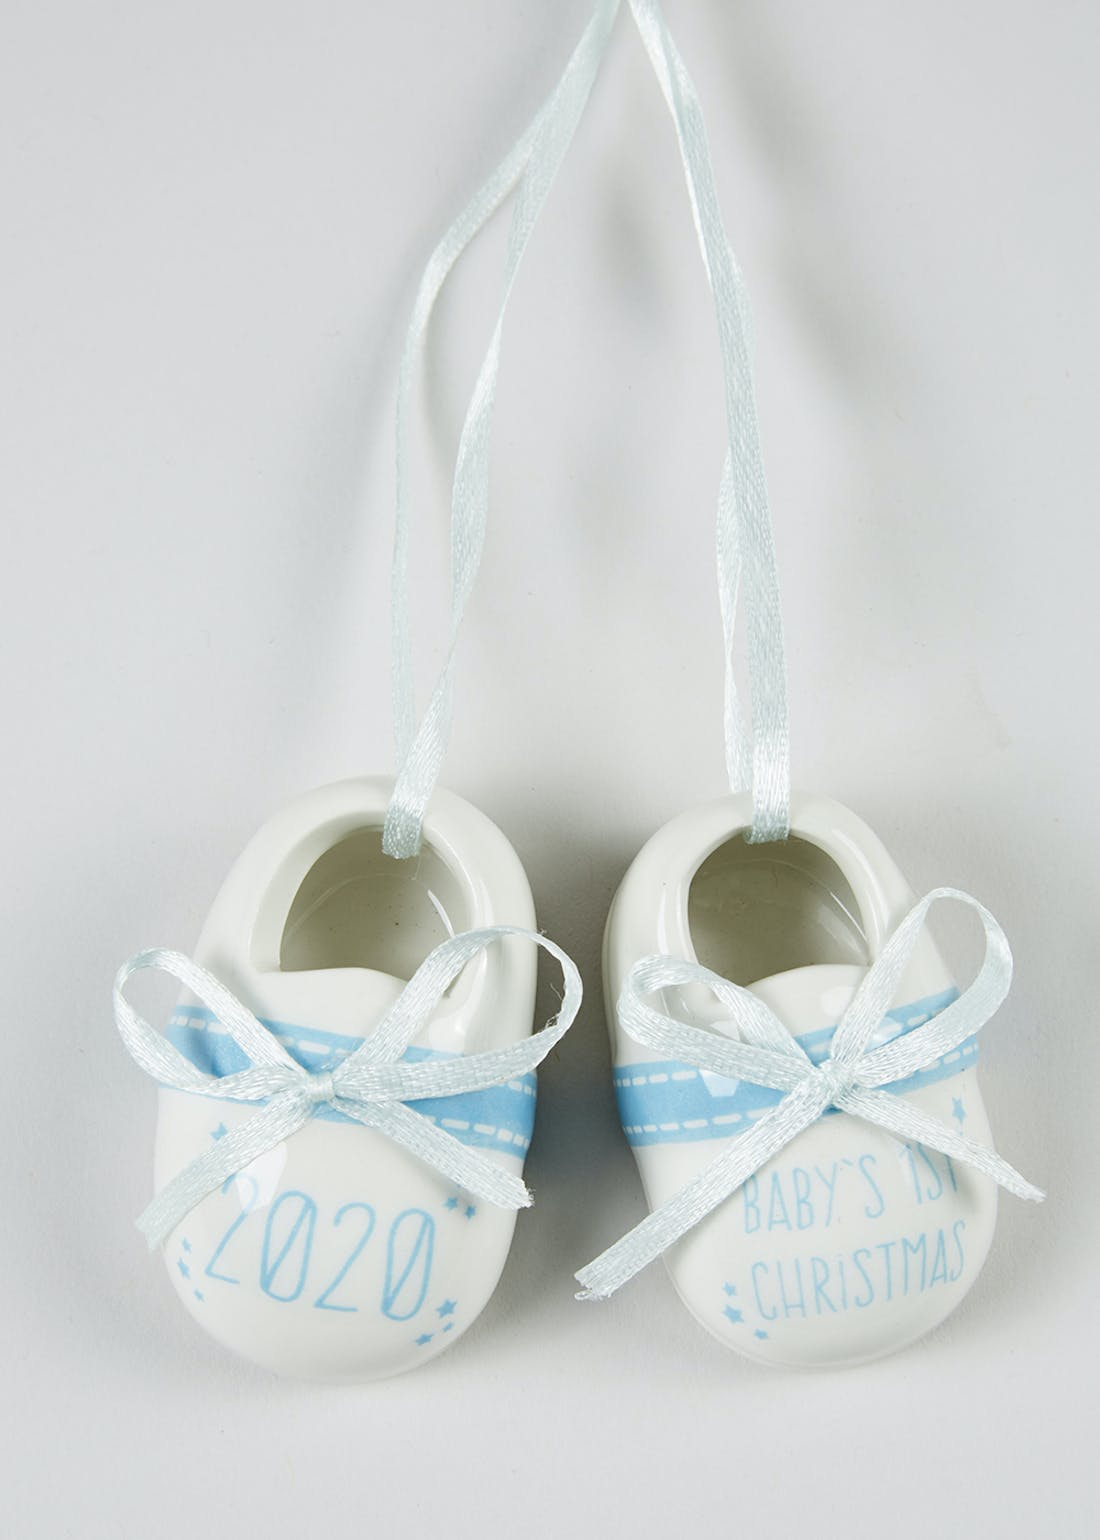 First Christmas Baby Shoes Decoration (6cm x 3.5cm)